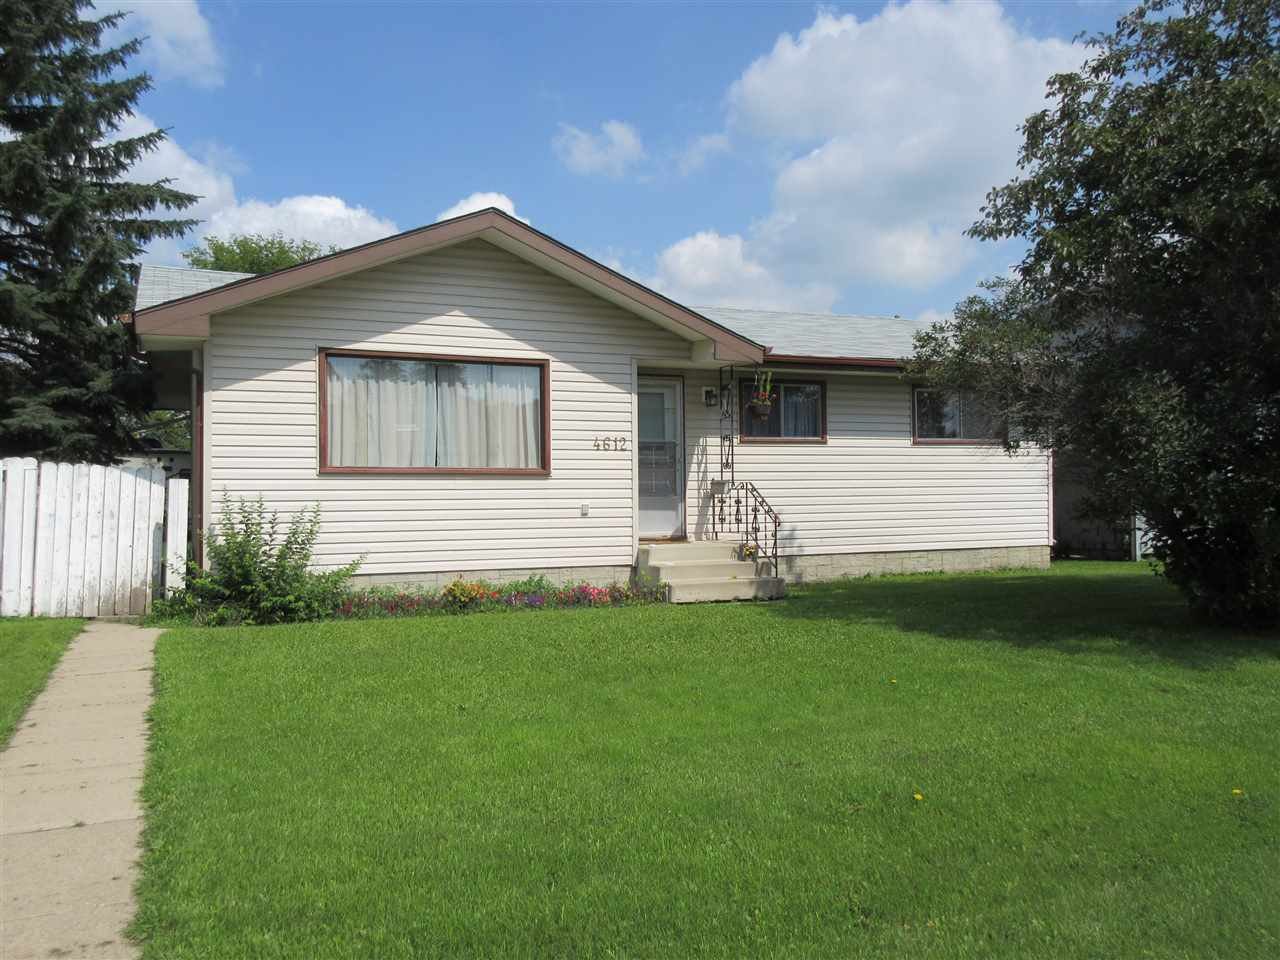 Main Photo: 4612 52 Avenue: Redwater House for sale : MLS®# E4213648